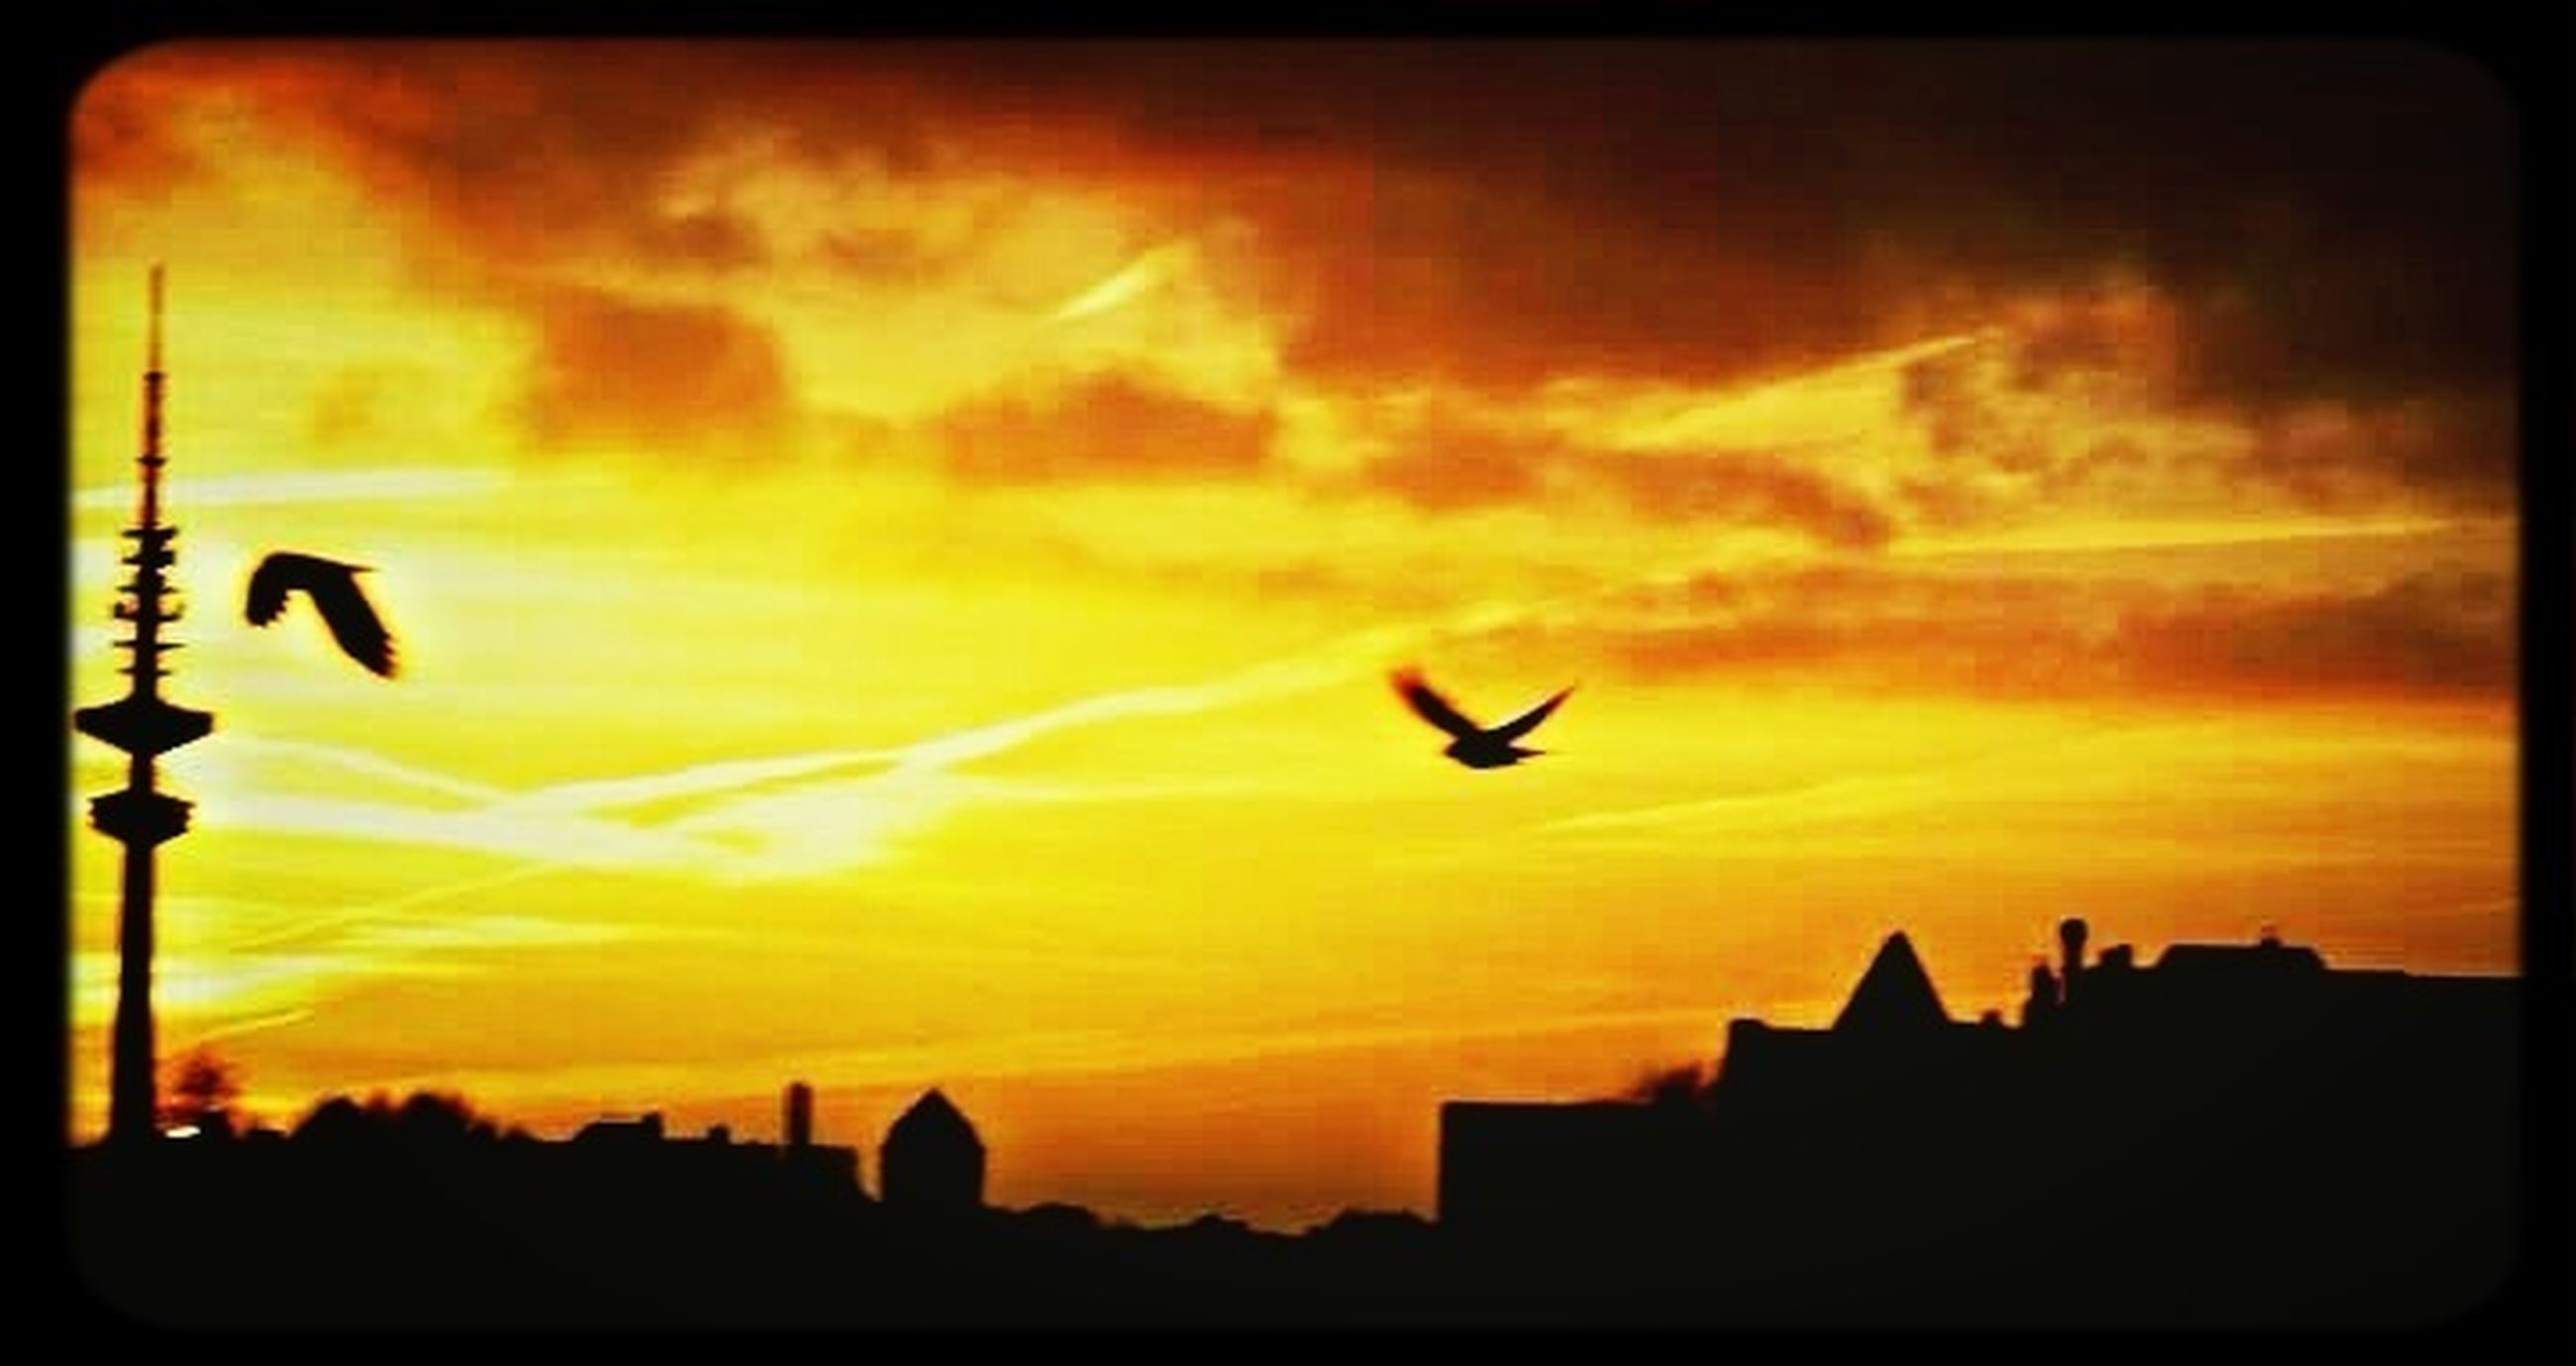 sunset, silhouette, flying, bird, animal themes, building exterior, animals in the wild, sky, wildlife, architecture, orange color, built structure, one animal, transfer print, cloud - sky, auto post production filter, low angle view, mid-air, beauty in nature, city